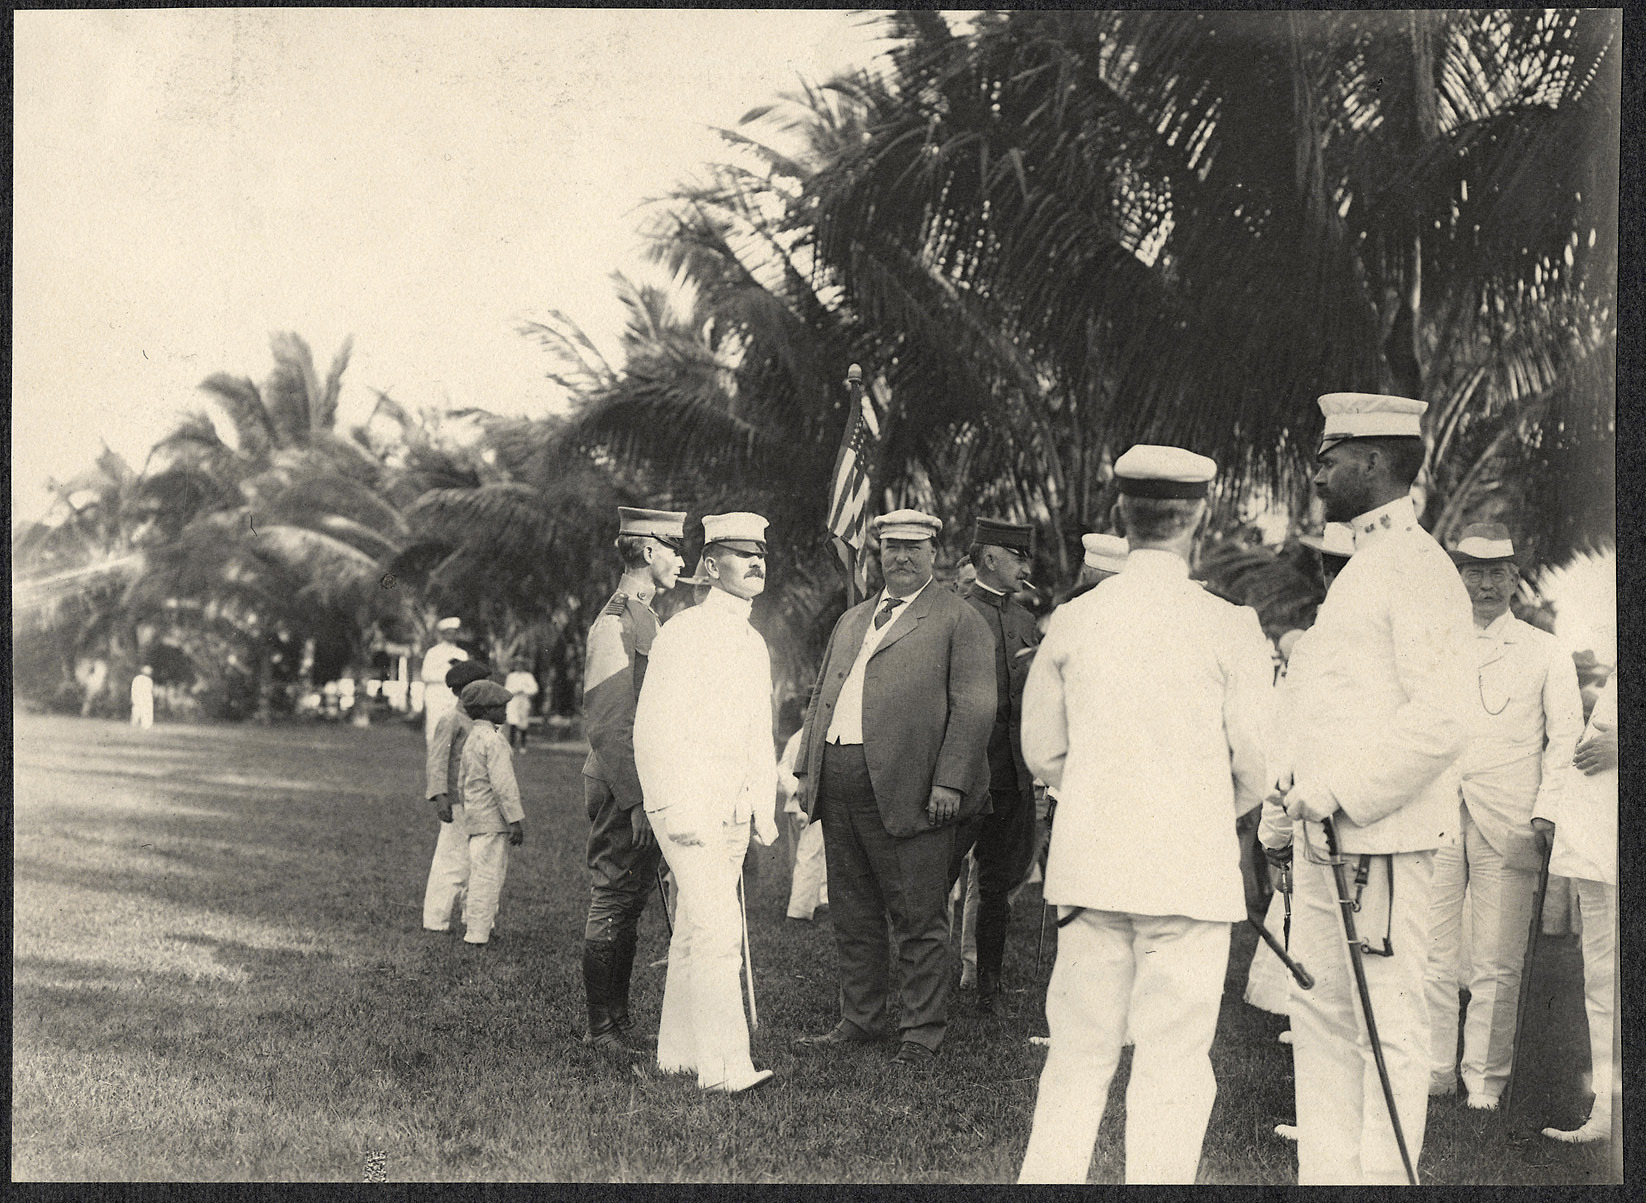 Zamboanga: William H. Taft at Zamboanga parade grounds